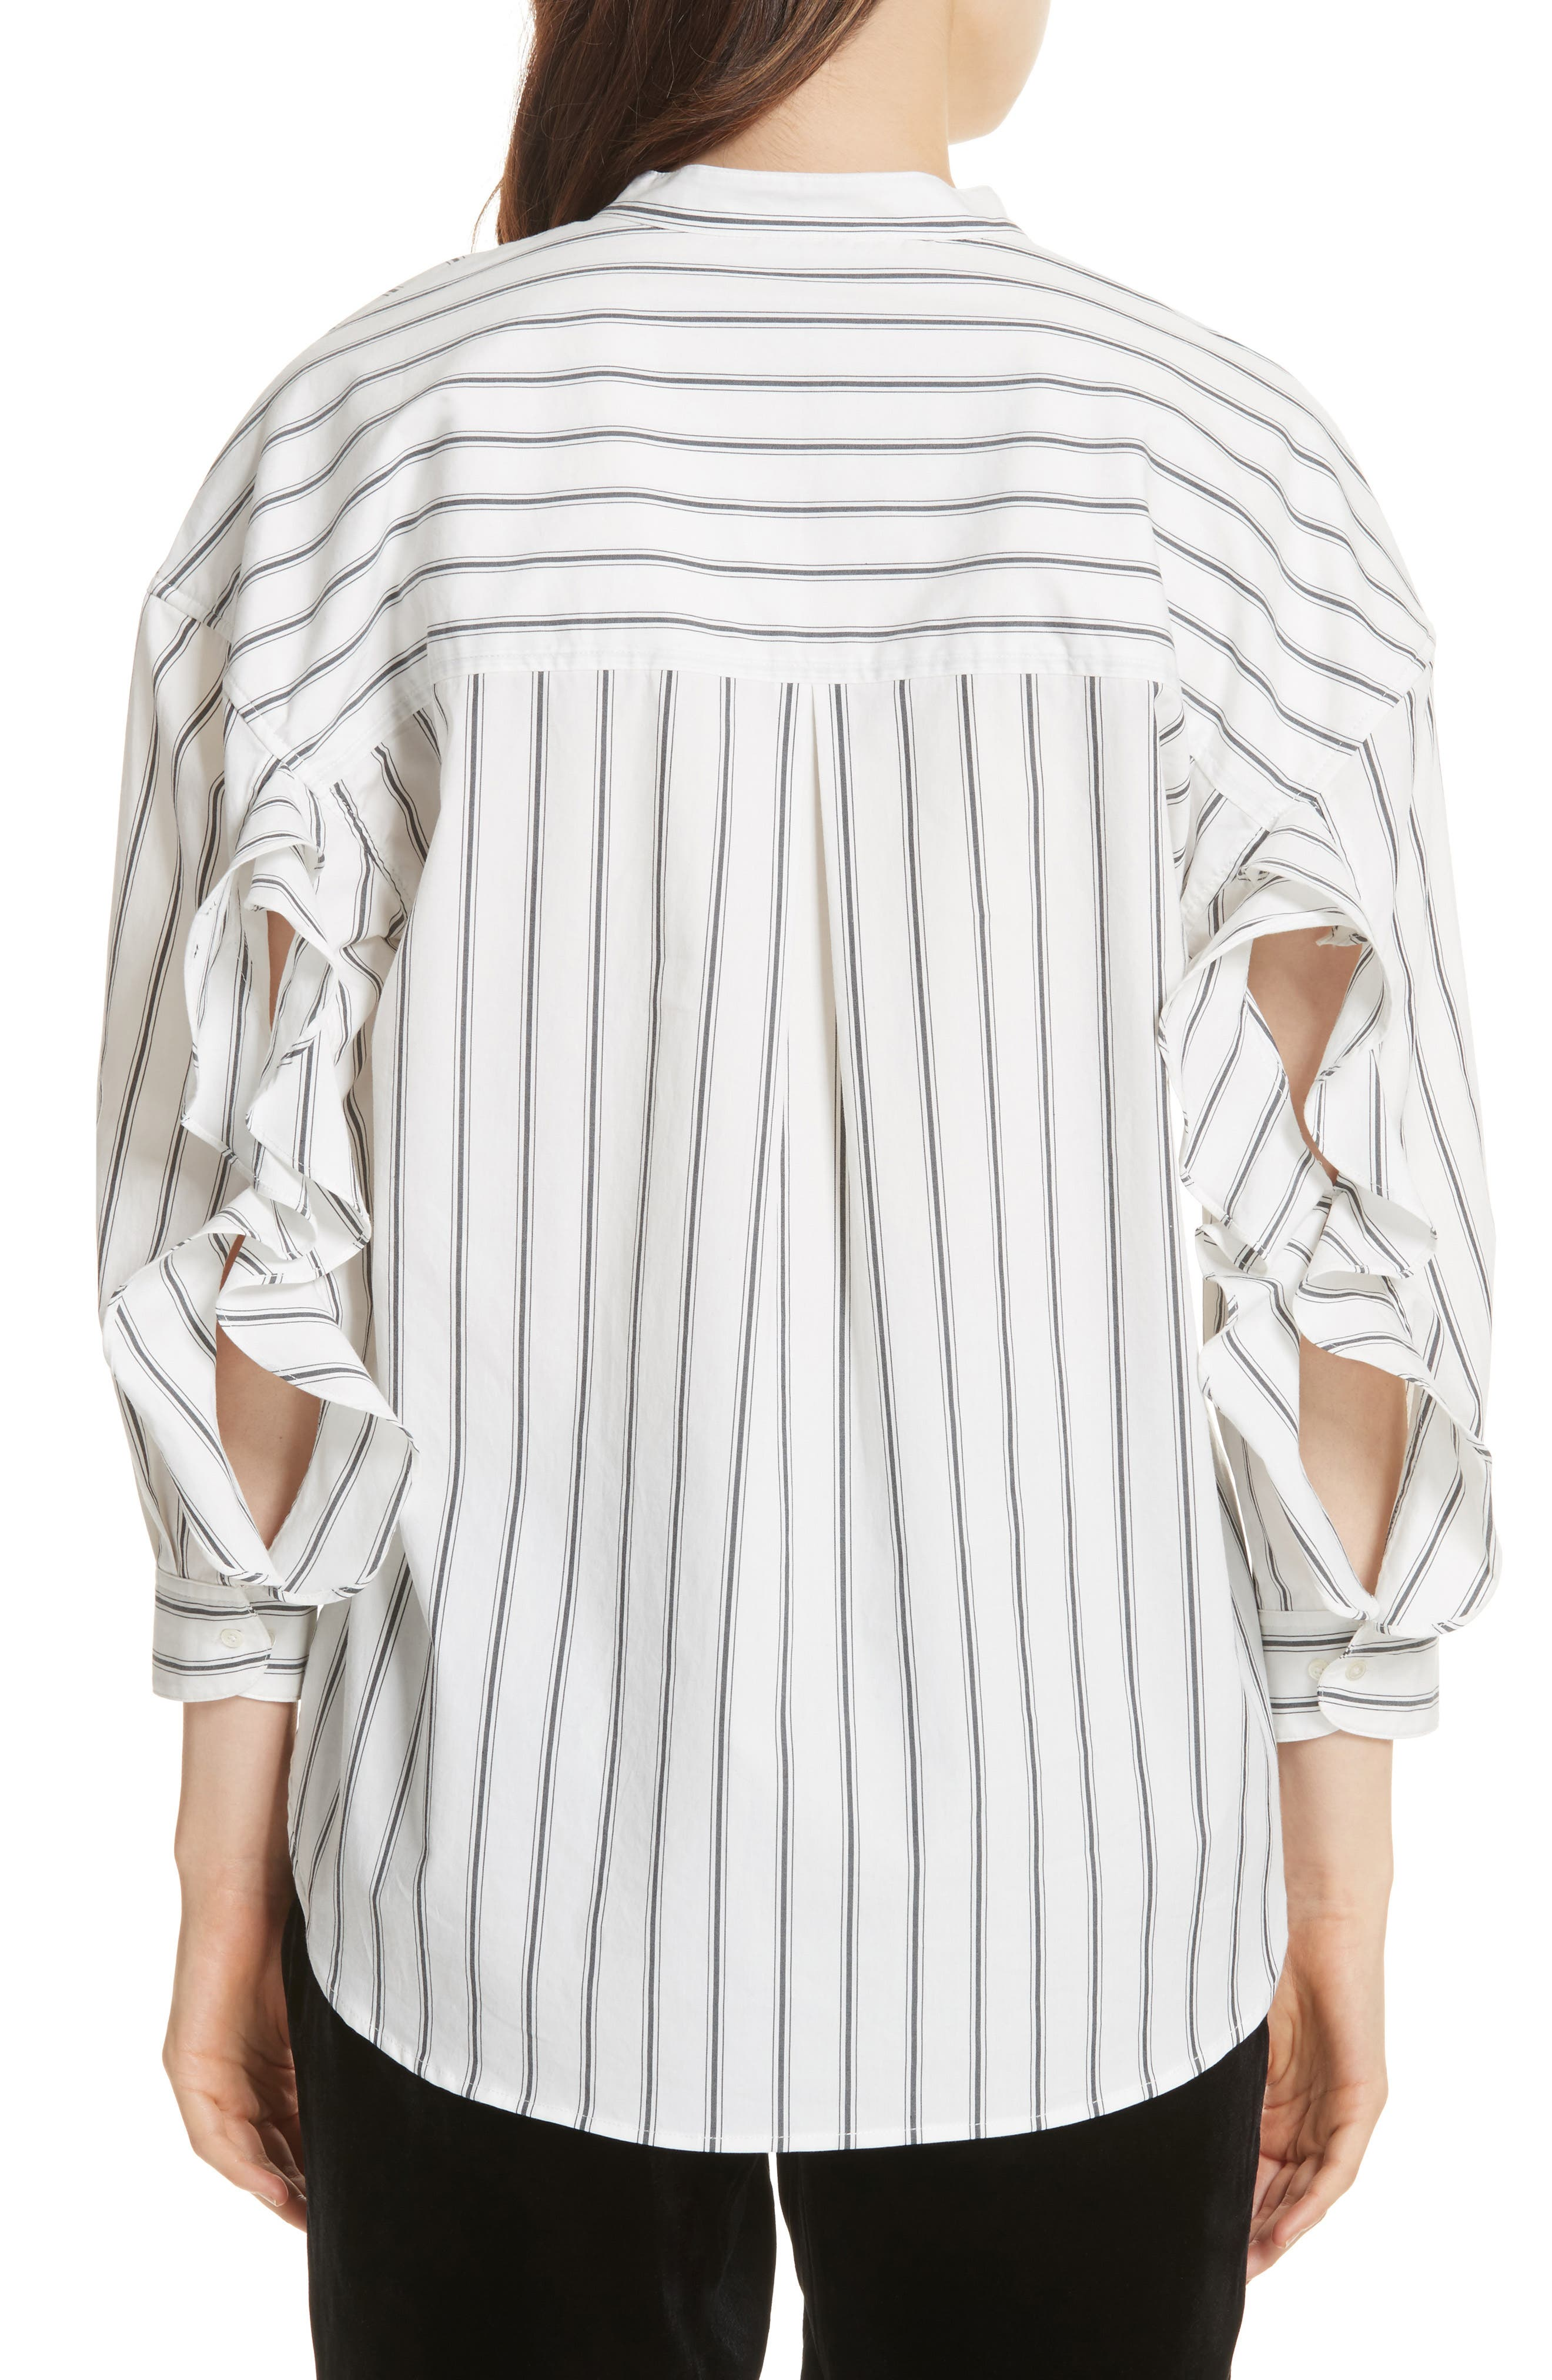 Poni Stripe Shirt,                             Alternate thumbnail 2, color,                             120